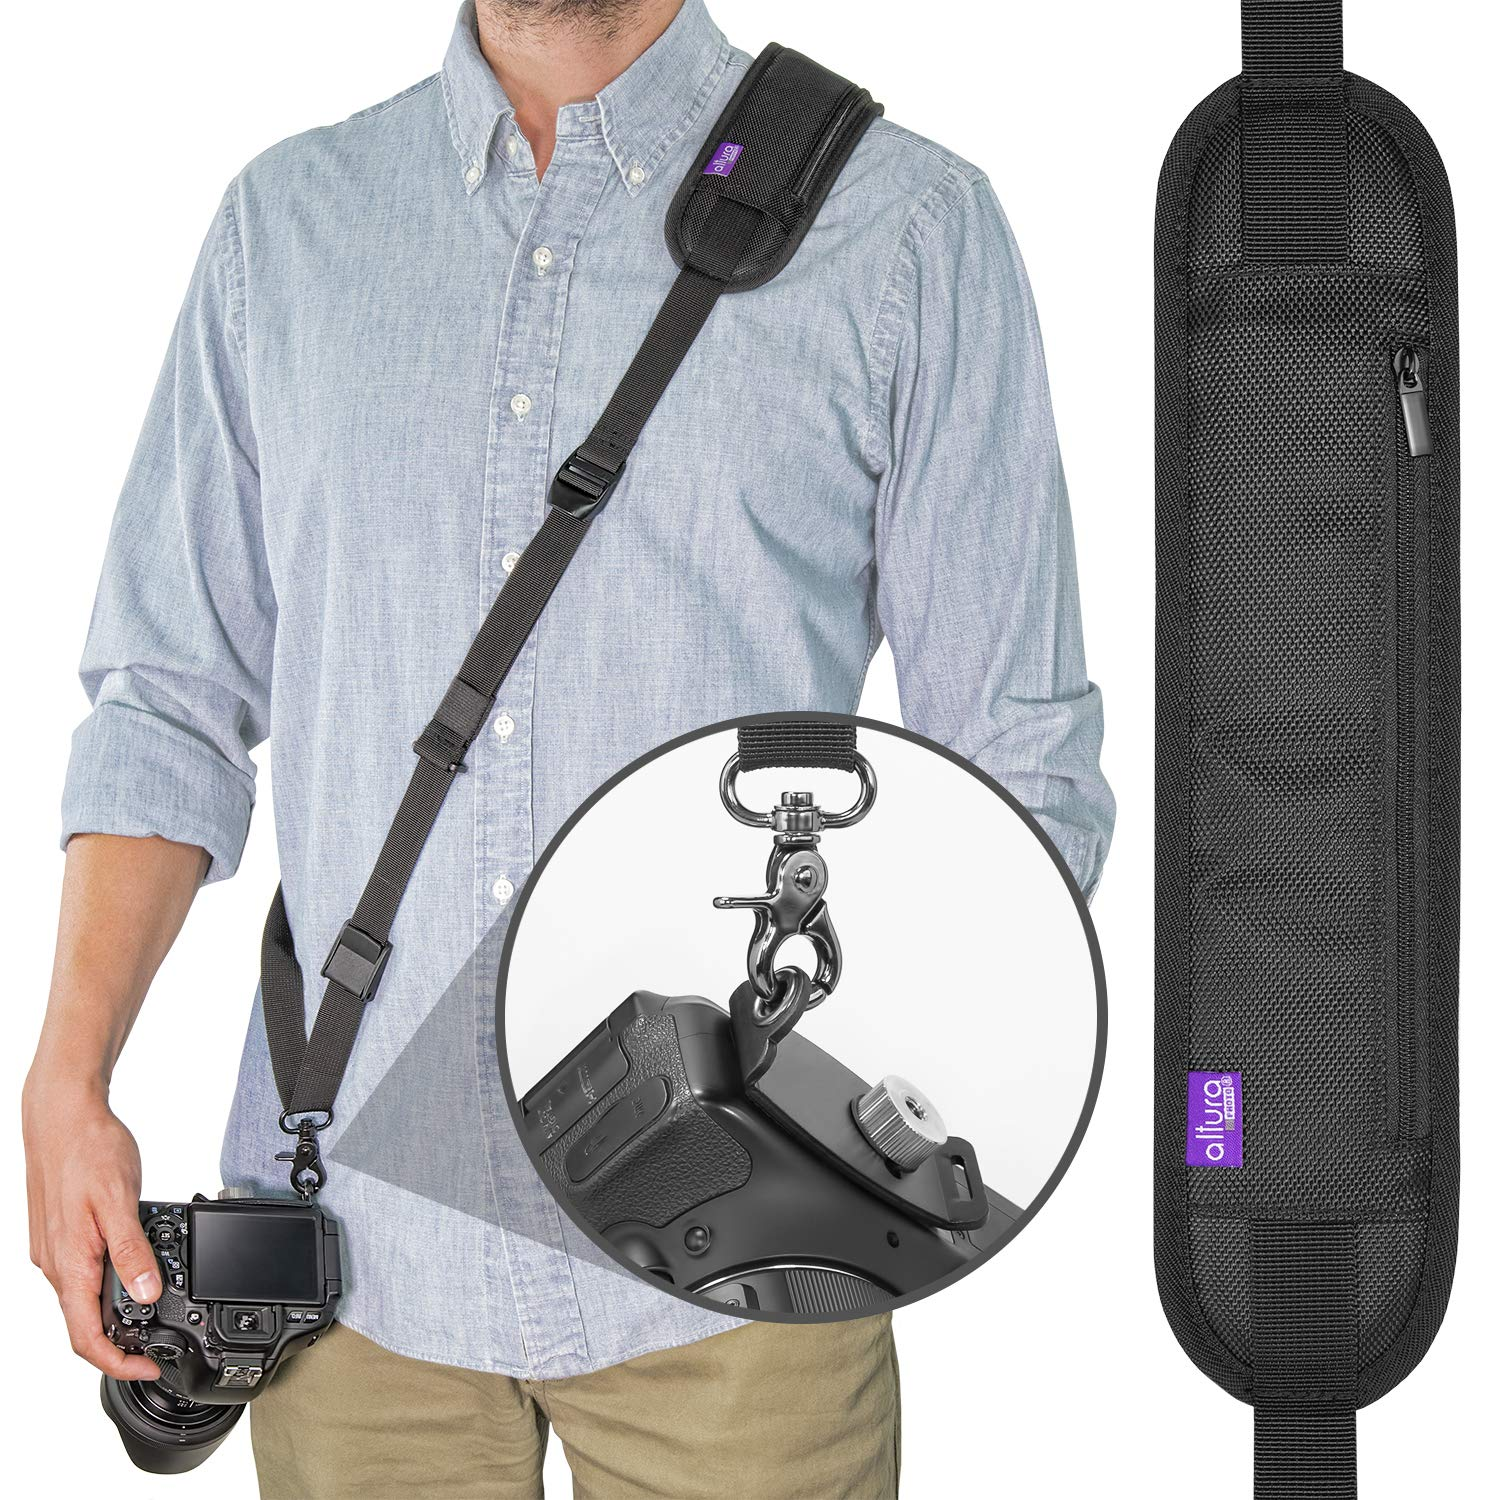 Altura Photo Rapid Fire Camera Neck Strap w/Quick Release and Safety Tether by Altura Photo